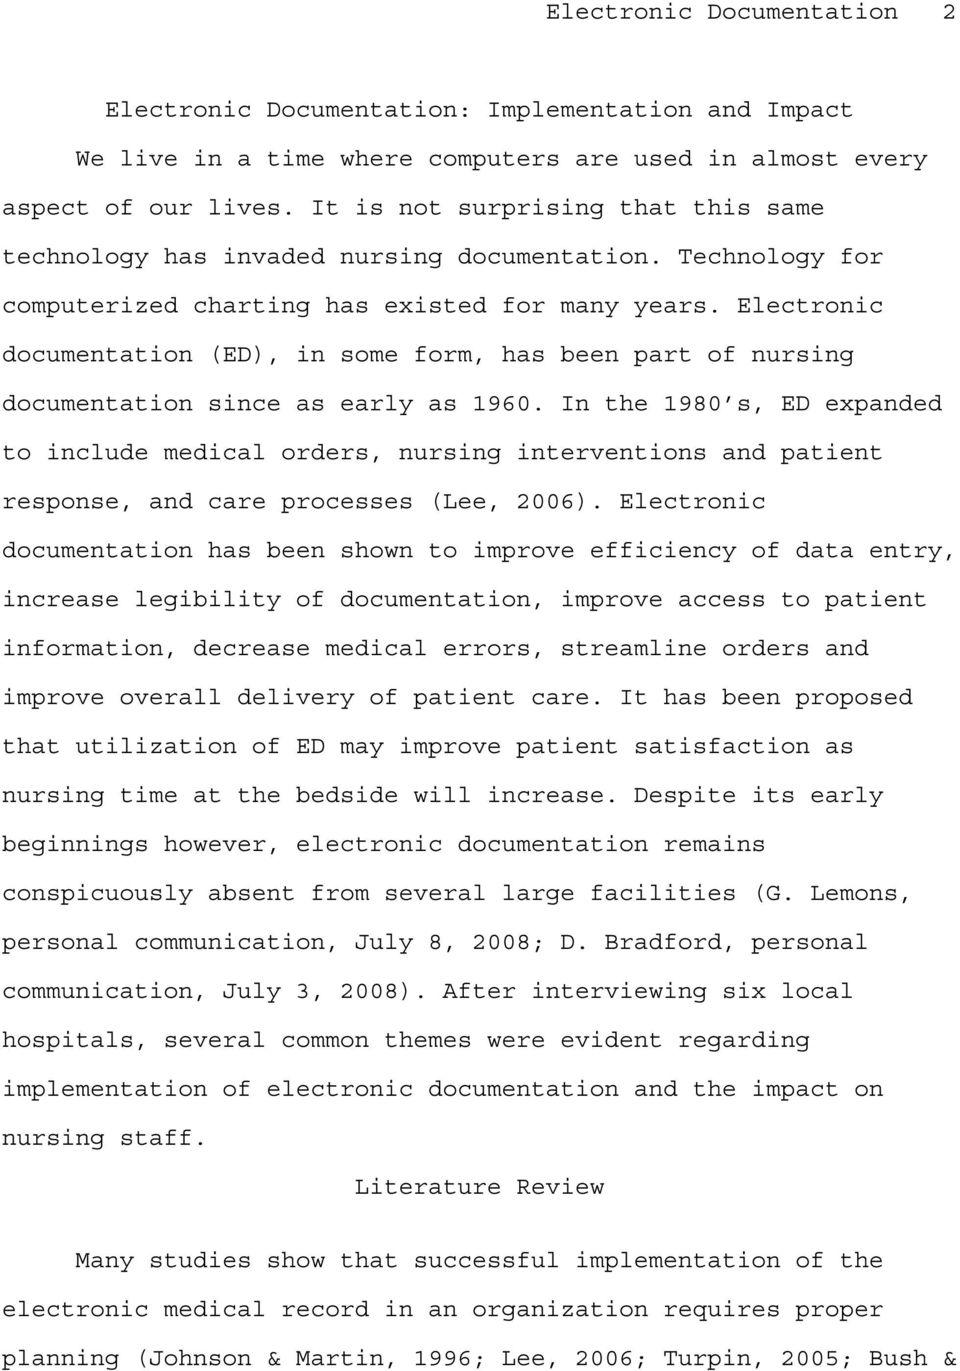 Electronic documentation (ED), in some form, has been part of nursing documentation since as early as 1960.